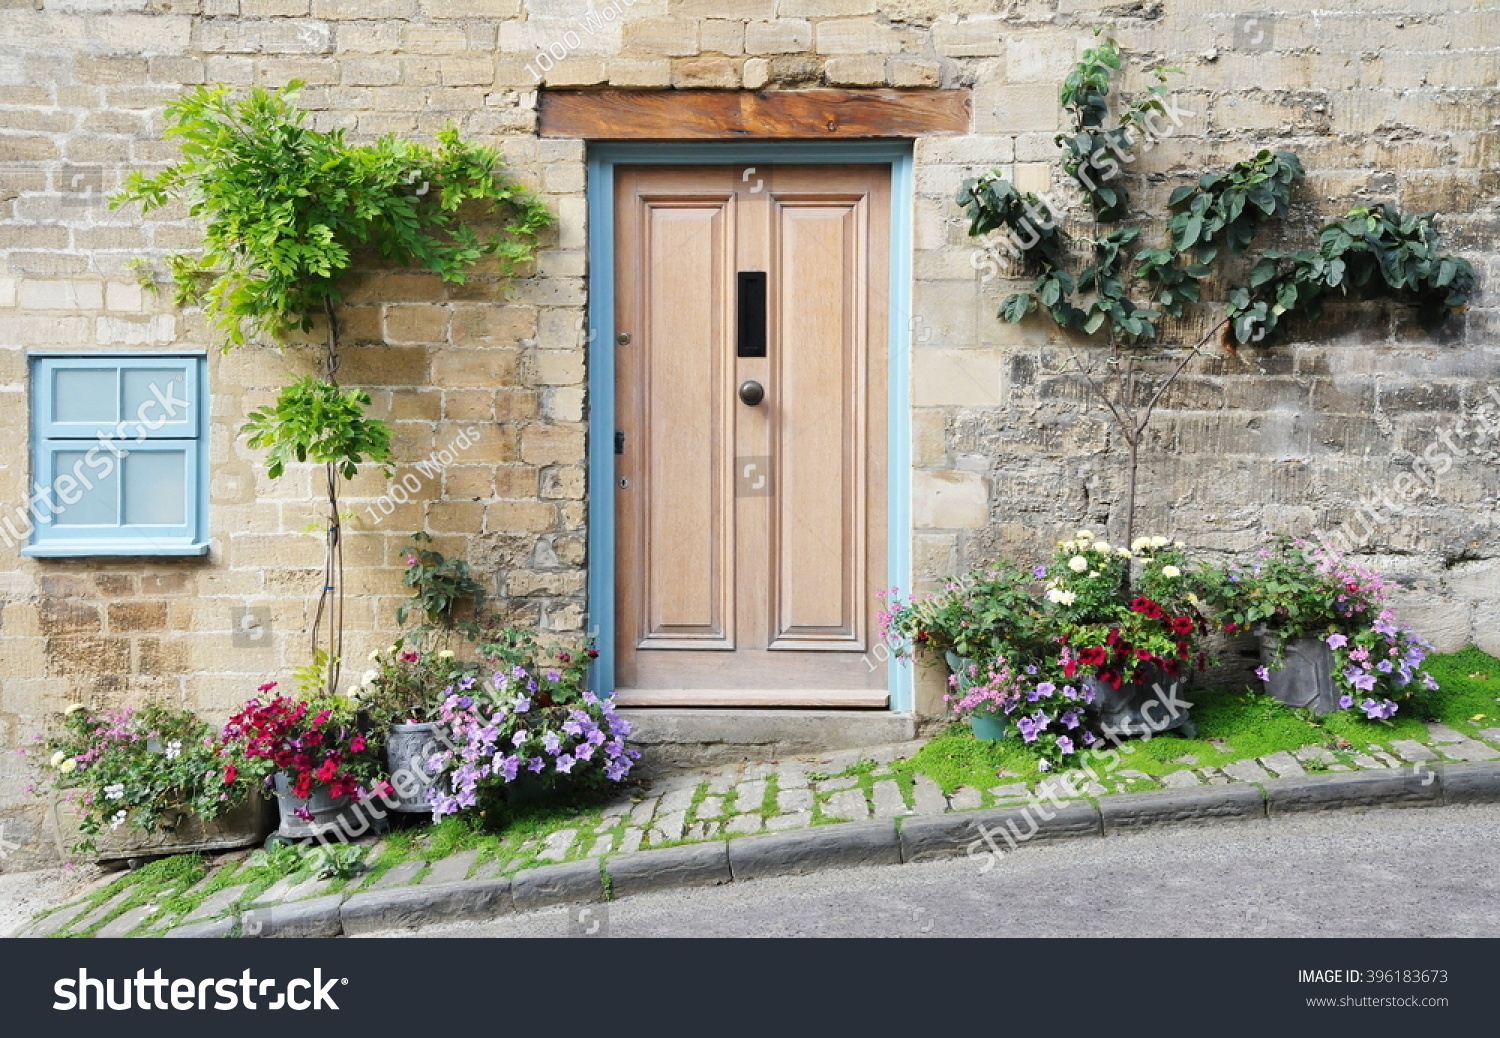 Front door of an old english cottage - Front Door And Exterior Of A Beautiful Old English Cottage